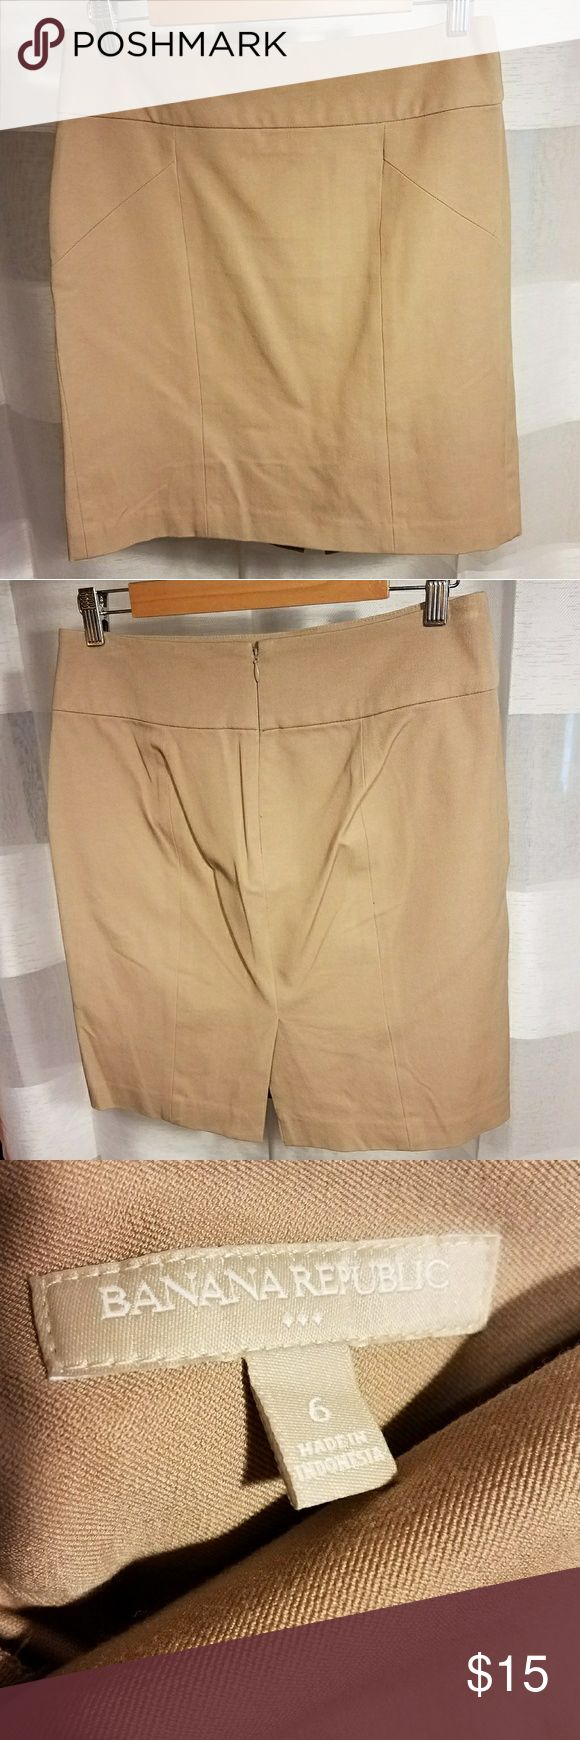 Banana Republic khaki tan pencil skirt Banana Republic factory. Flattering slim fit pencil skirt with stretch for comfort. Worn once. Banana Republic Skirts Pencil